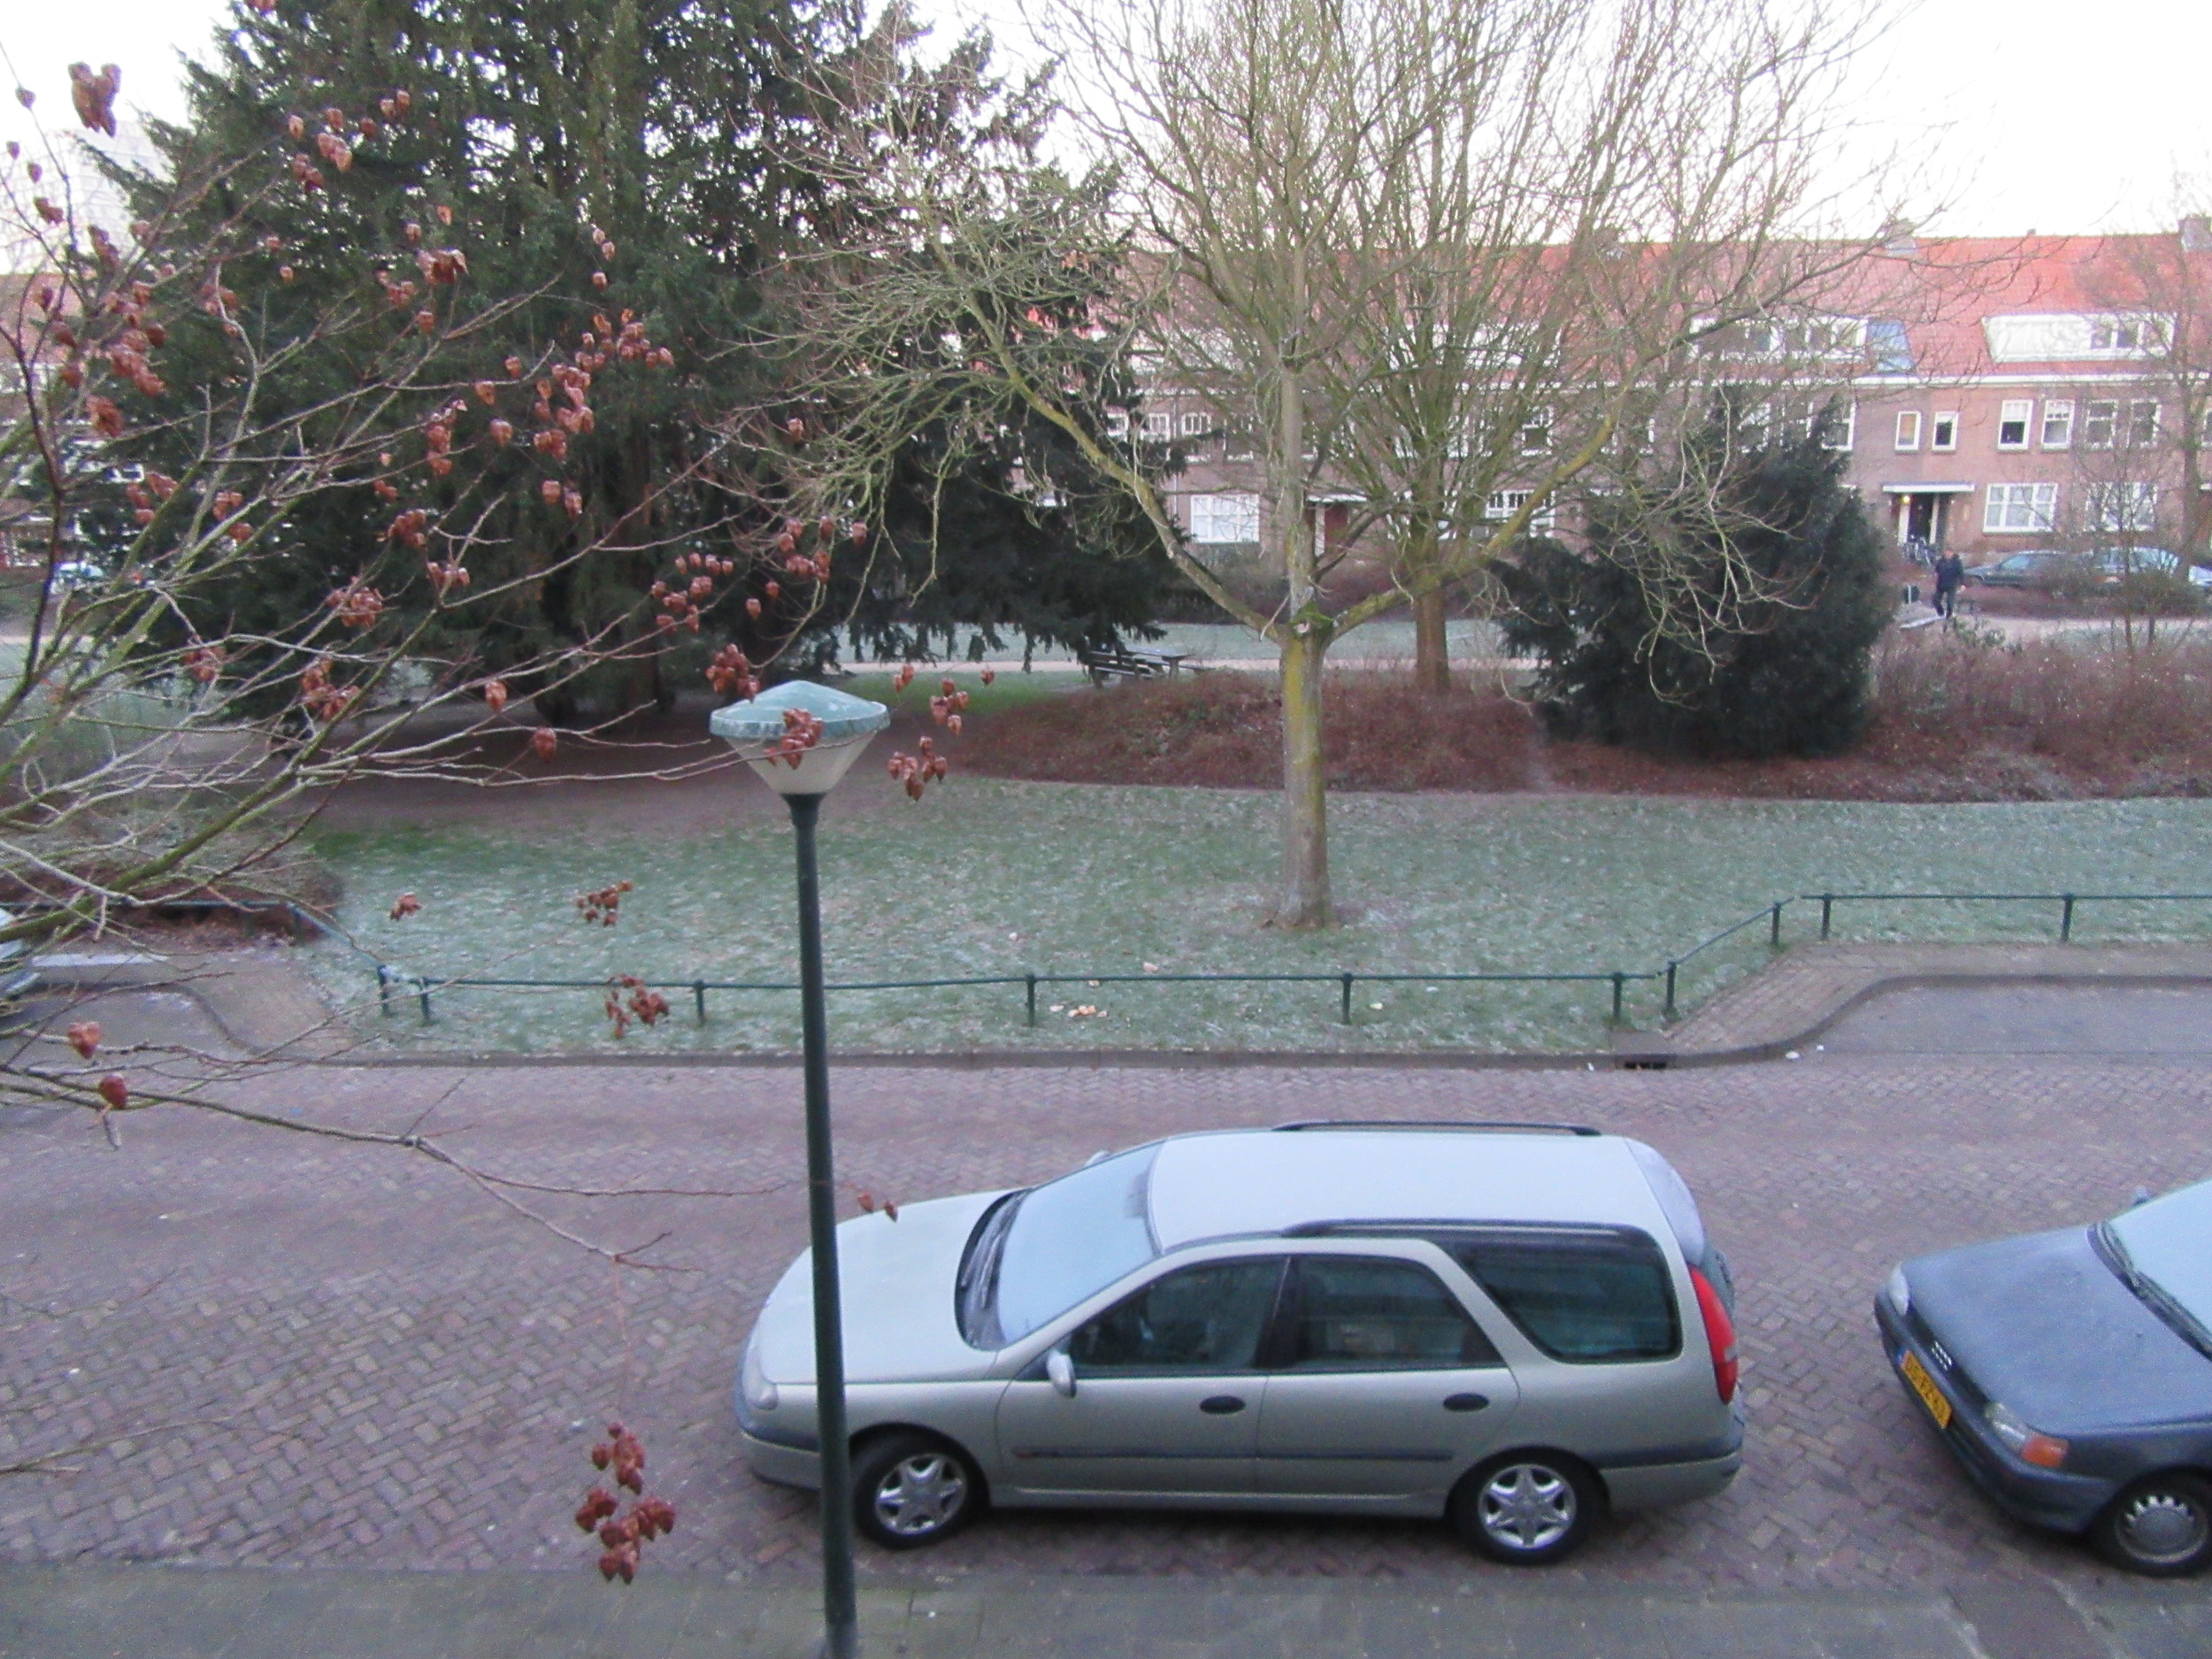 The view from my room at the front of the house we stayed in.